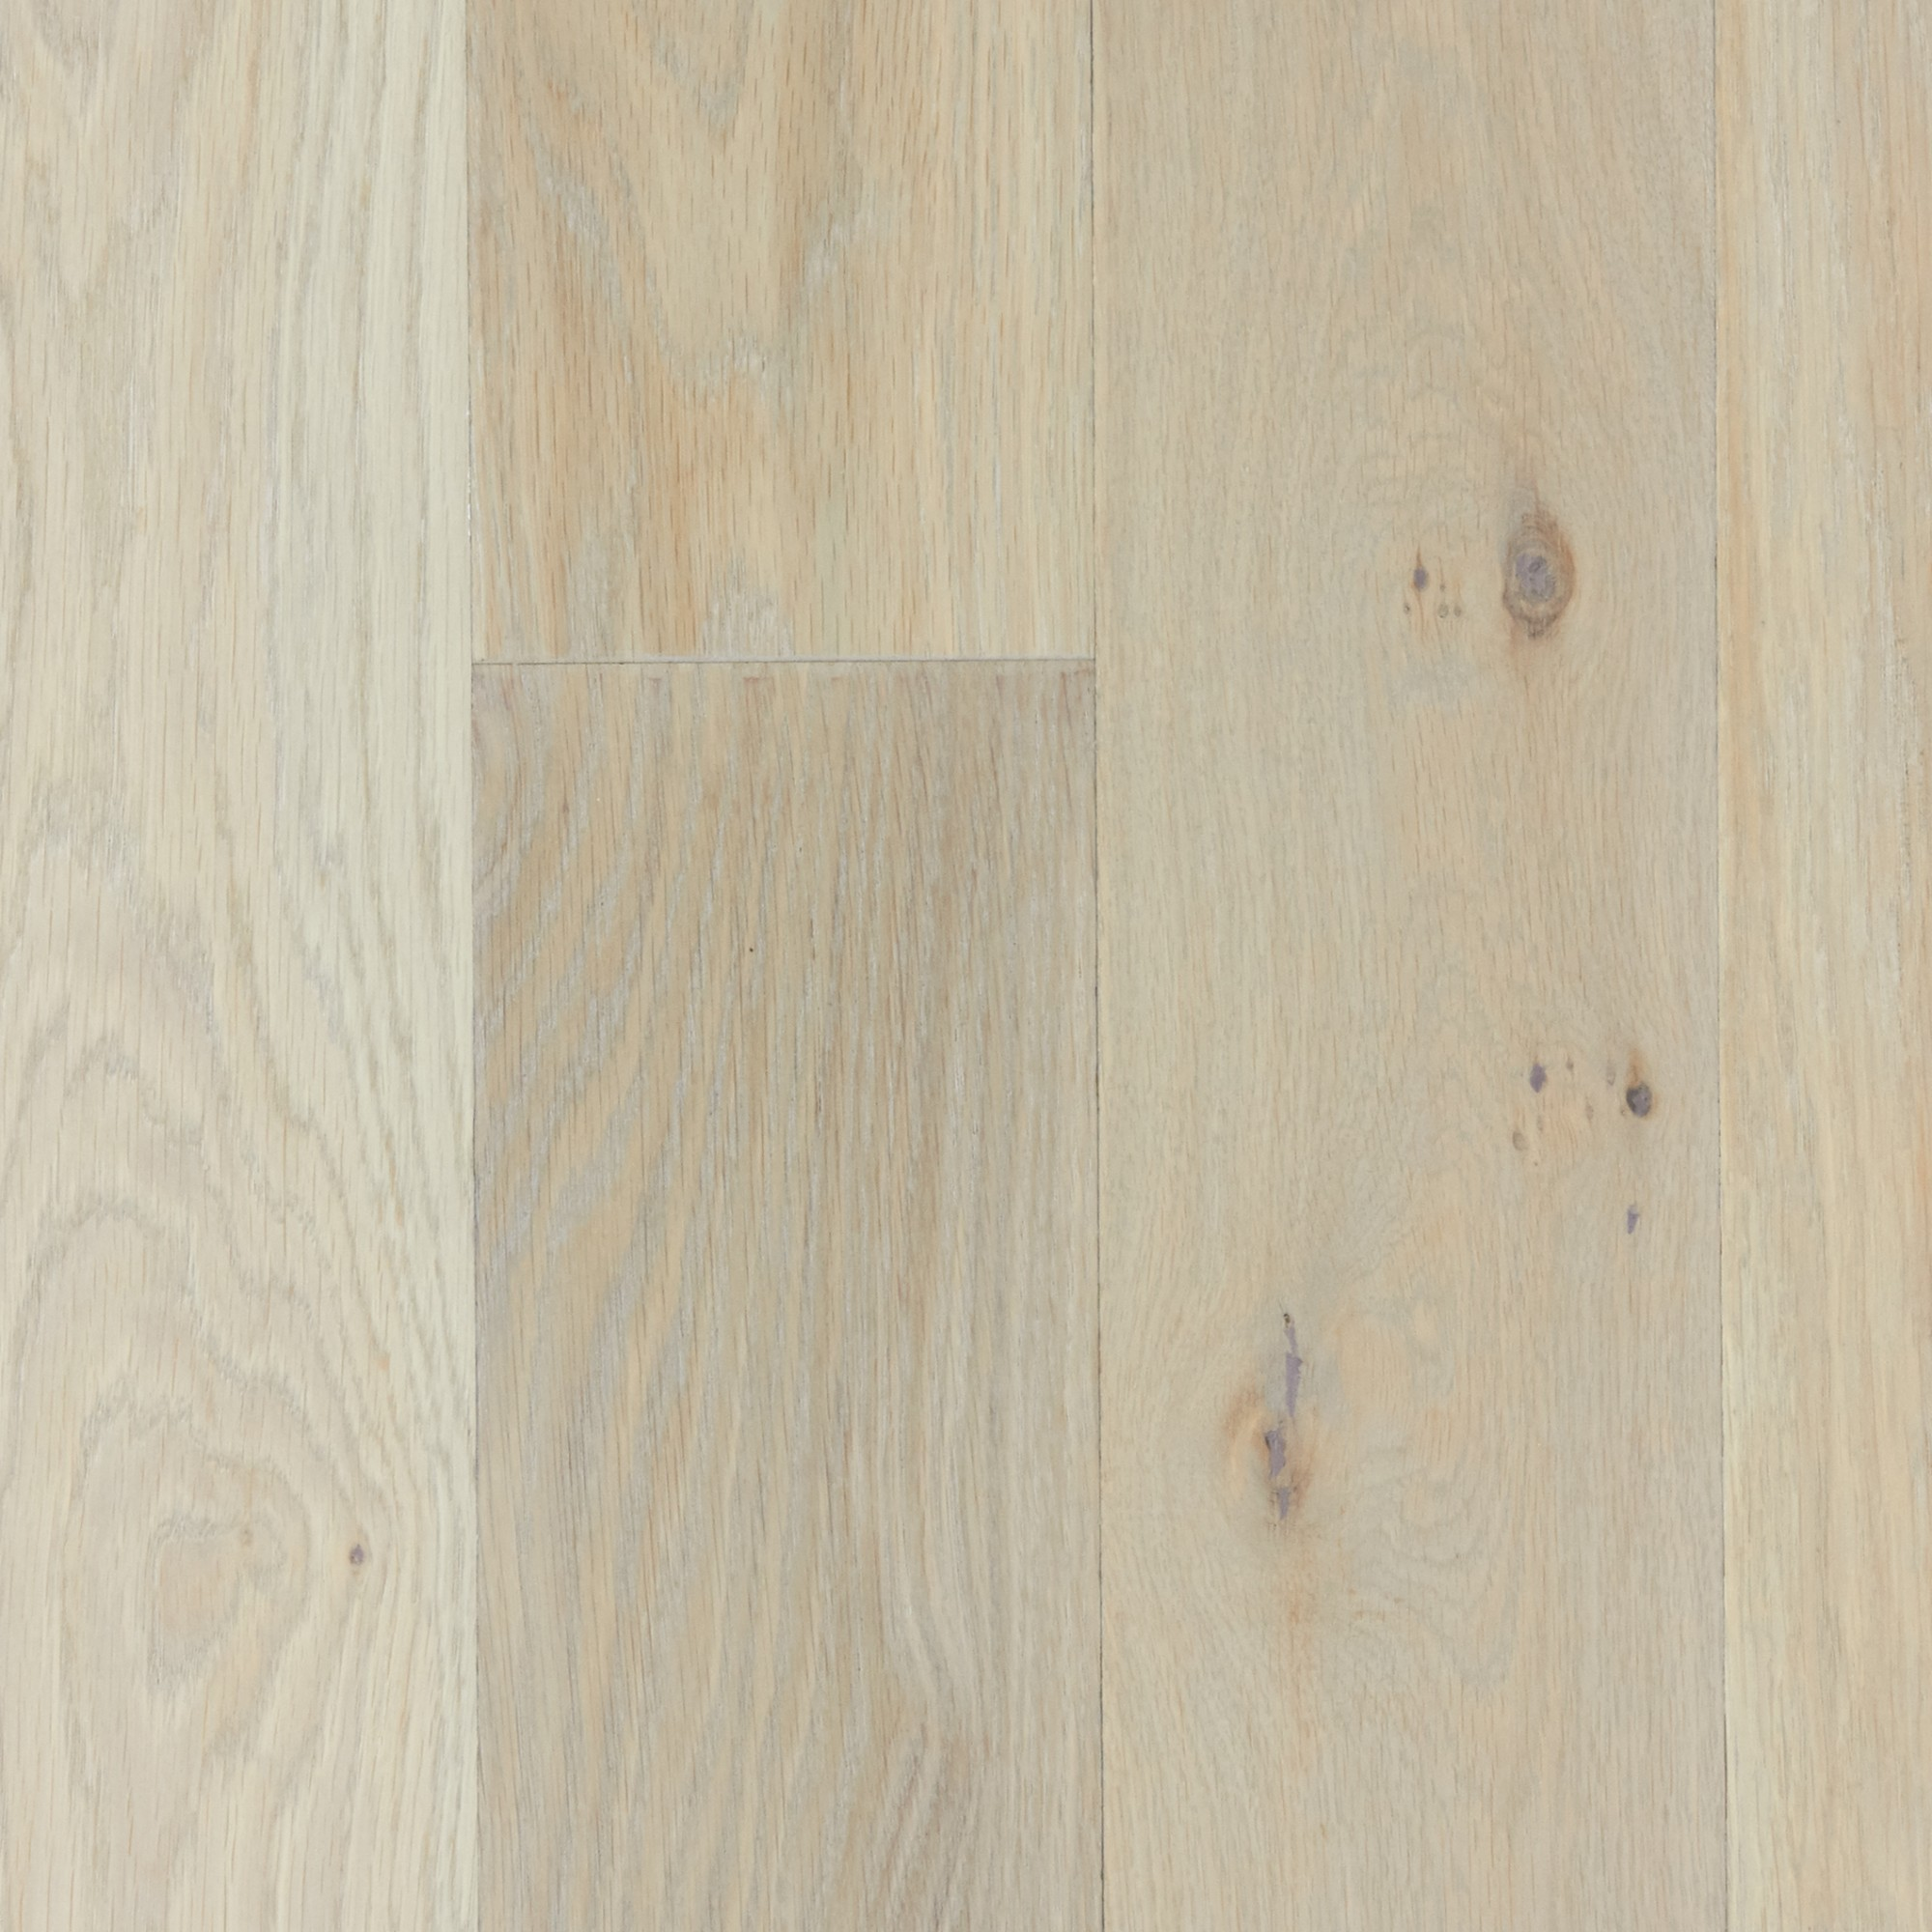 Hand Scraped White Oak Nautilus Vintage Hardwood Flooring